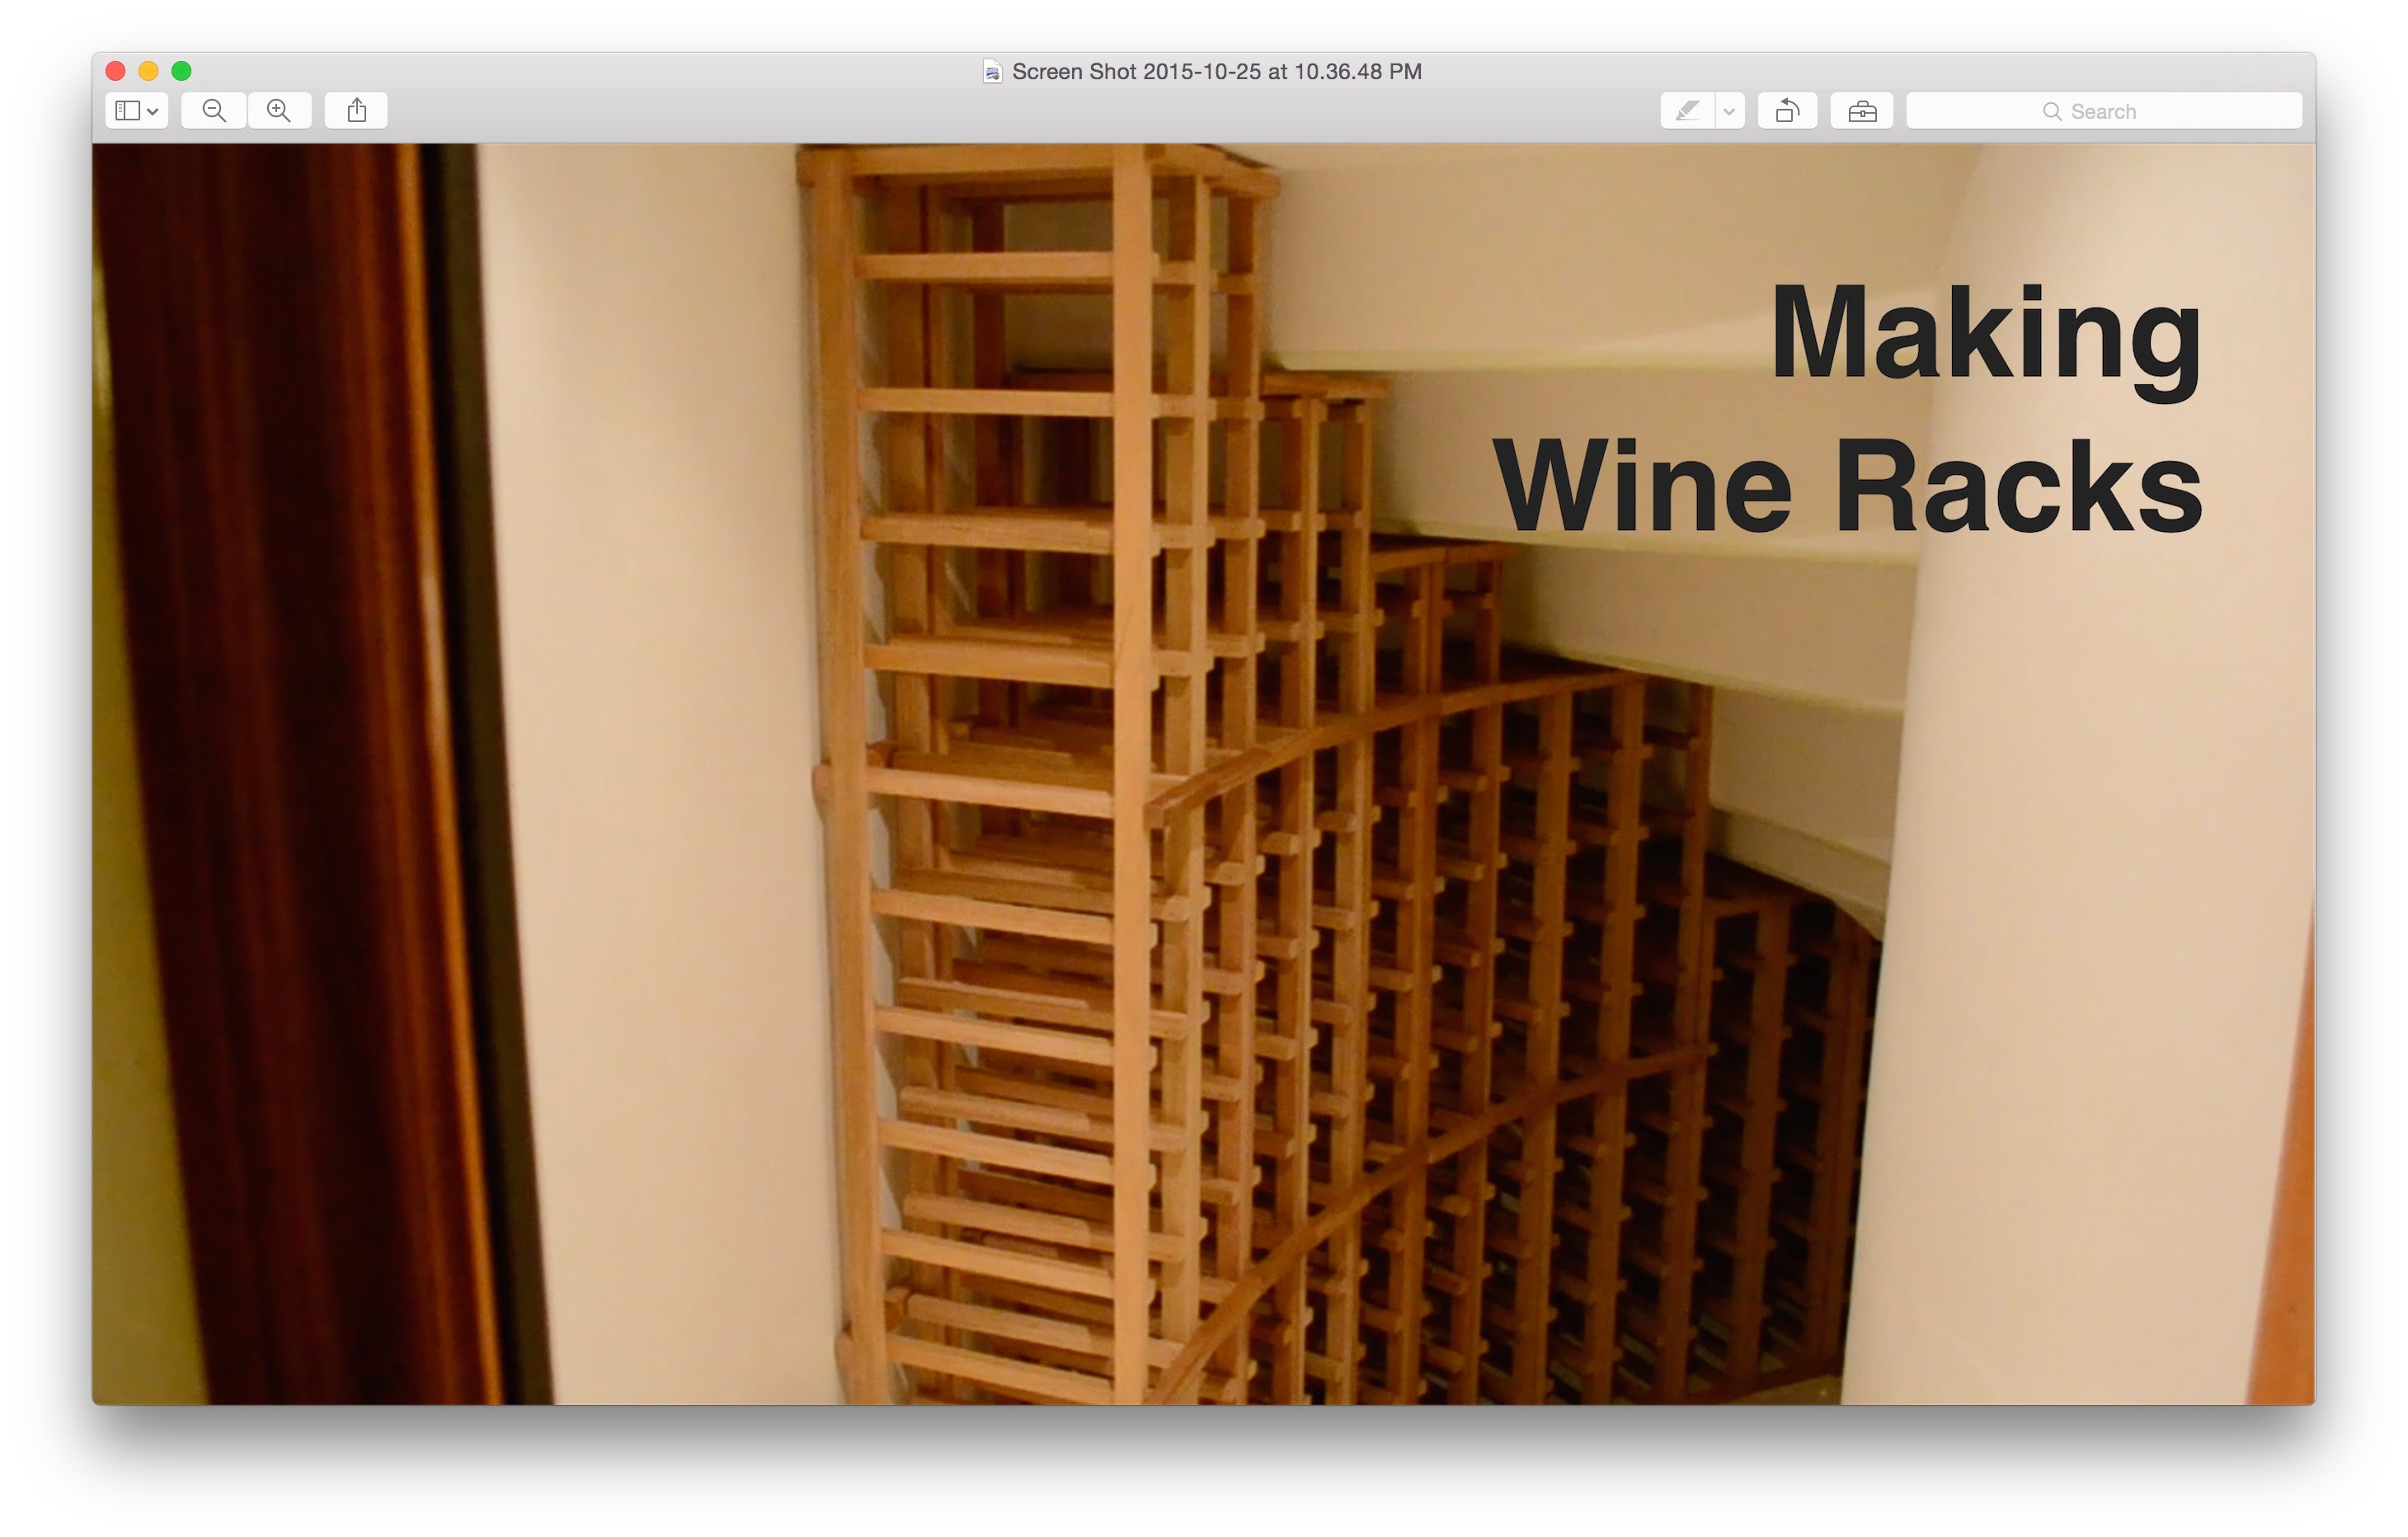 diy wine racks making wine racks - youtube NJWKPOA